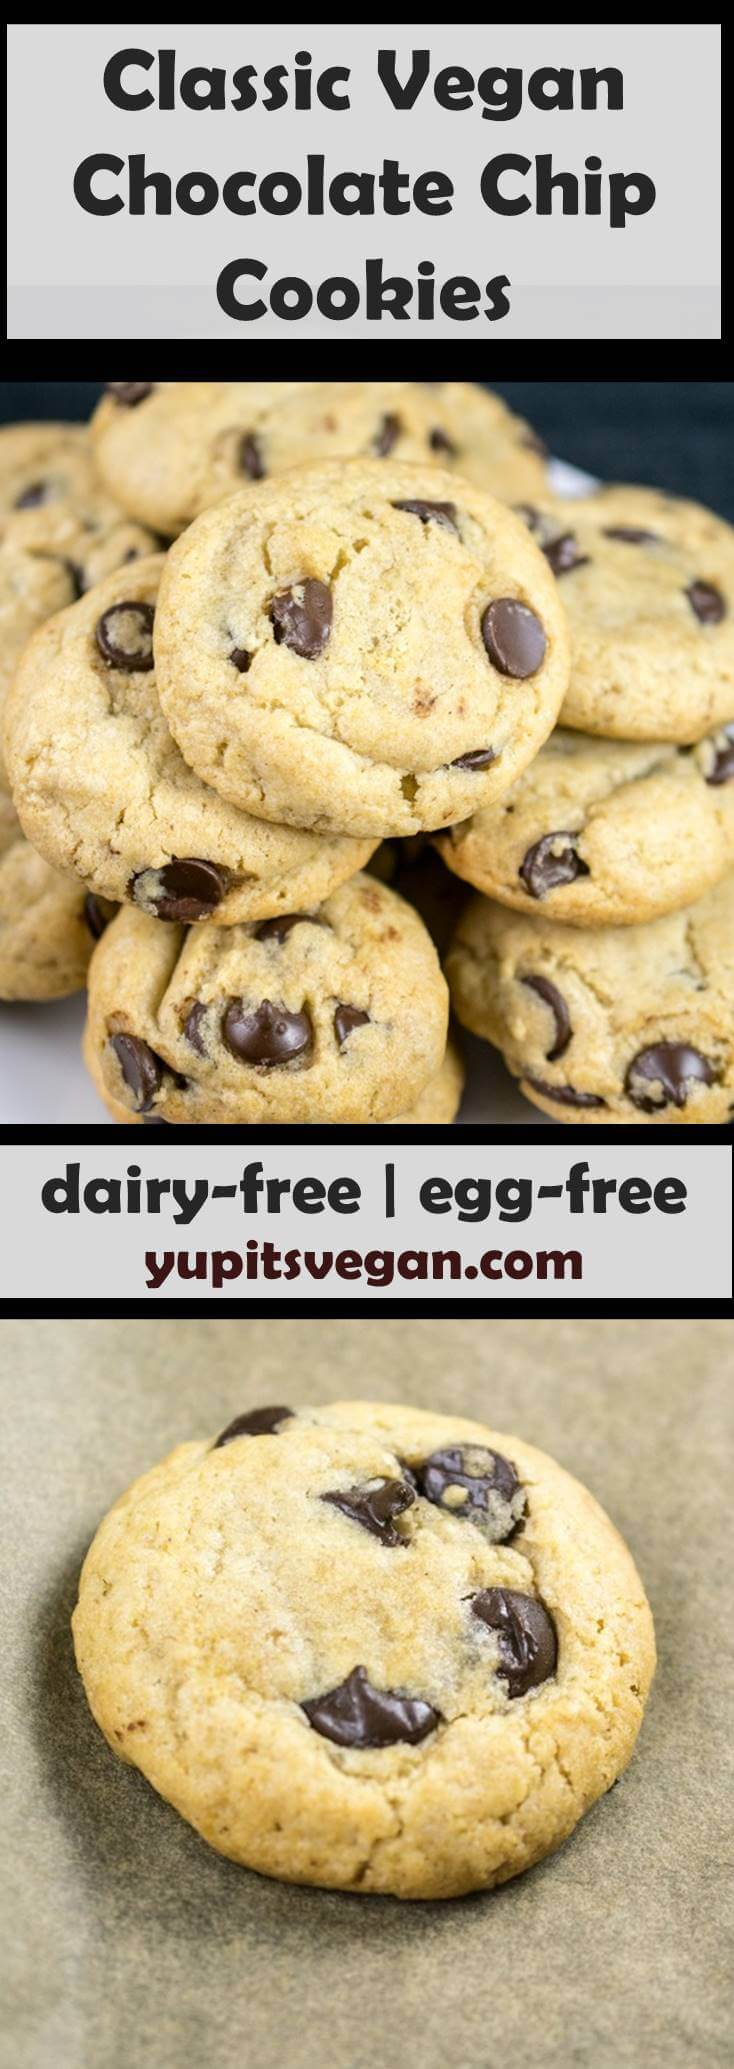 Vegan Chocolate Chip Cookies | Yup, it's Vegan. Everything you need to know about making easy dairy-free, egg-free chocolate chip cookies with regular everyday ingredients. Also happens to be soy-free and nut-free.